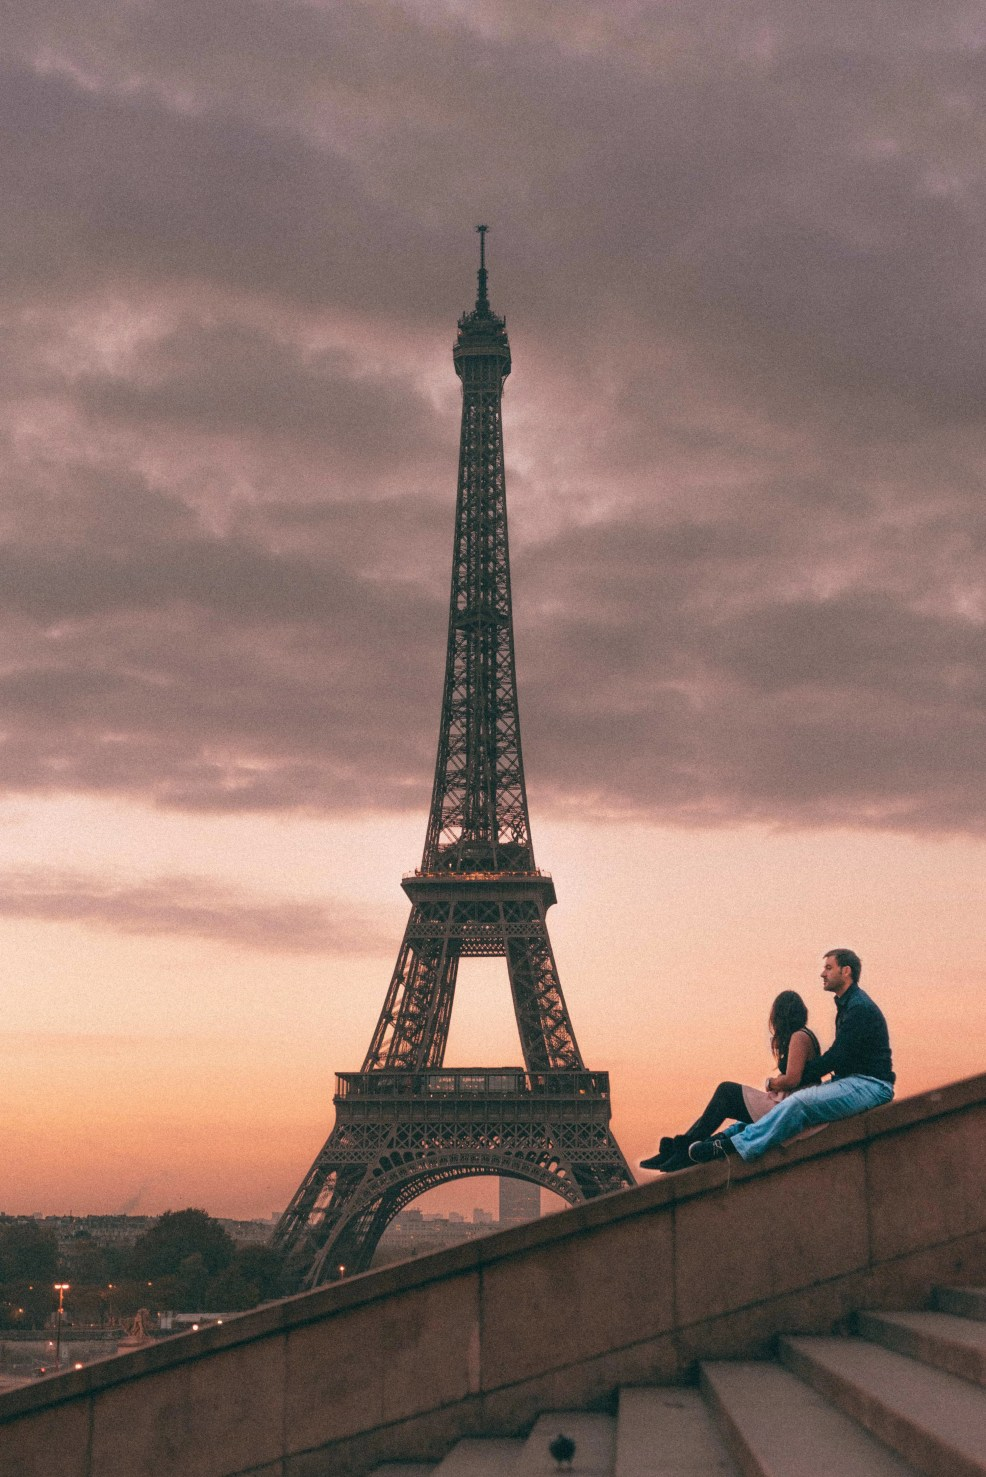 places to visit in Europe this summer, Paris